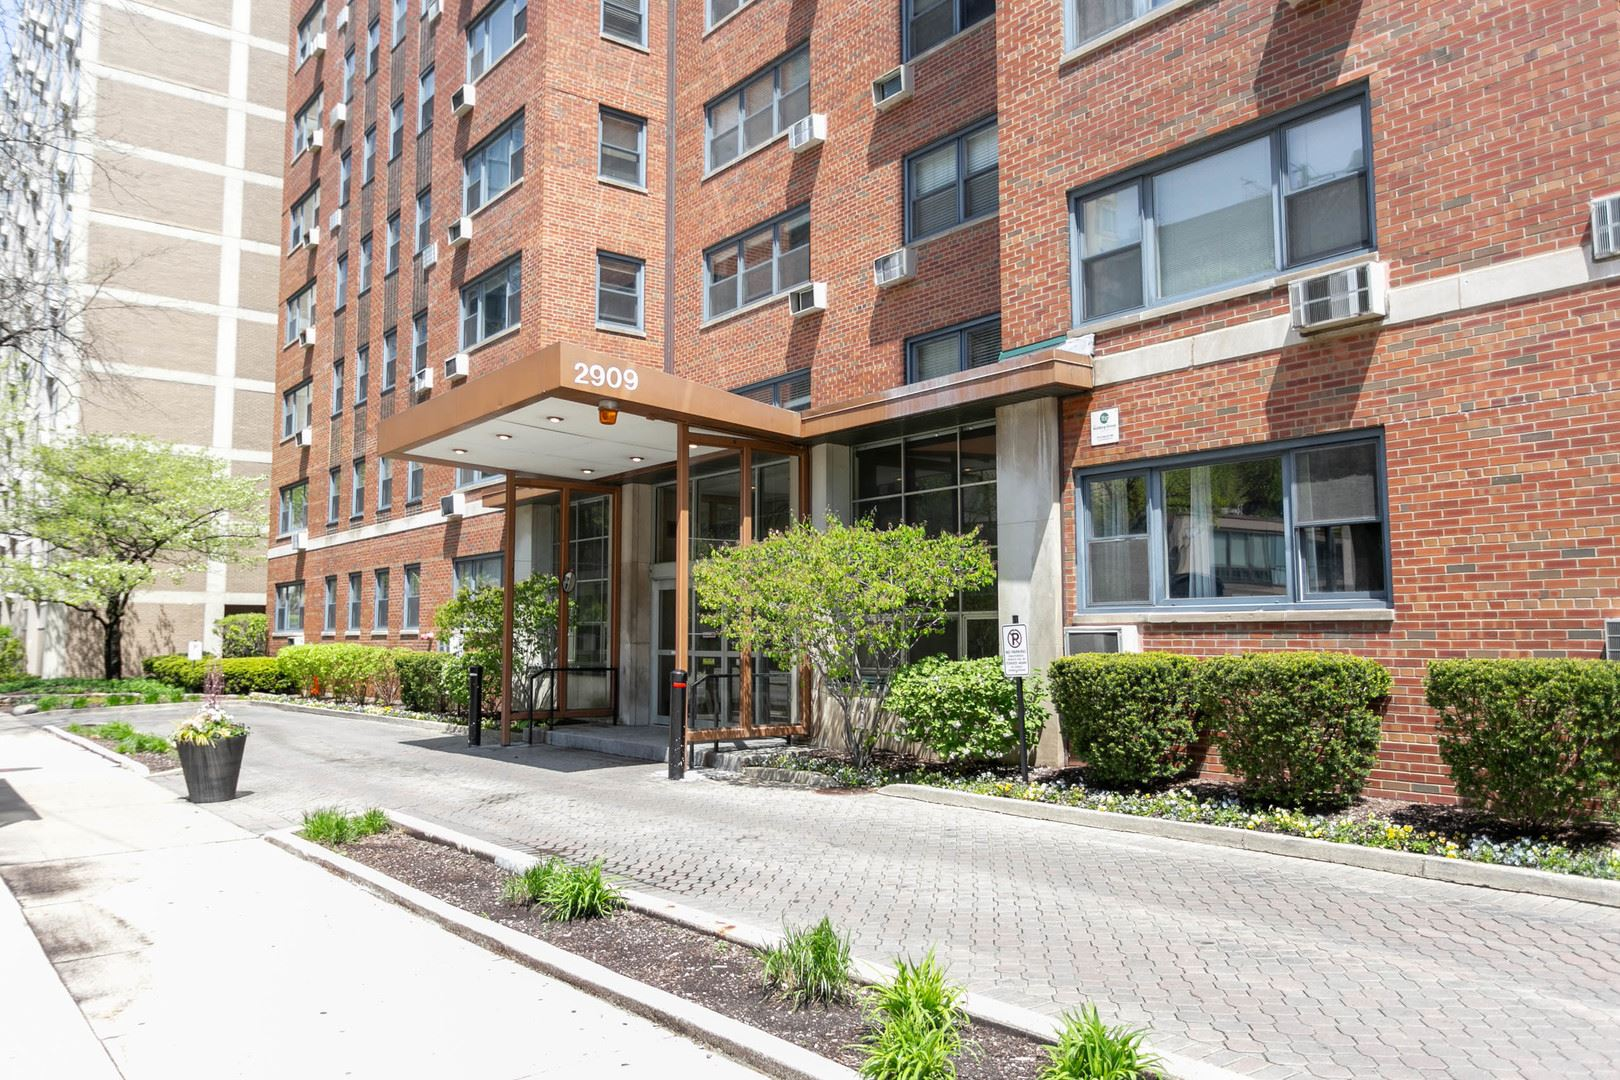 2909 N SHERIDAN Road #1410, Chicago, IL 60657 - #: 10724372